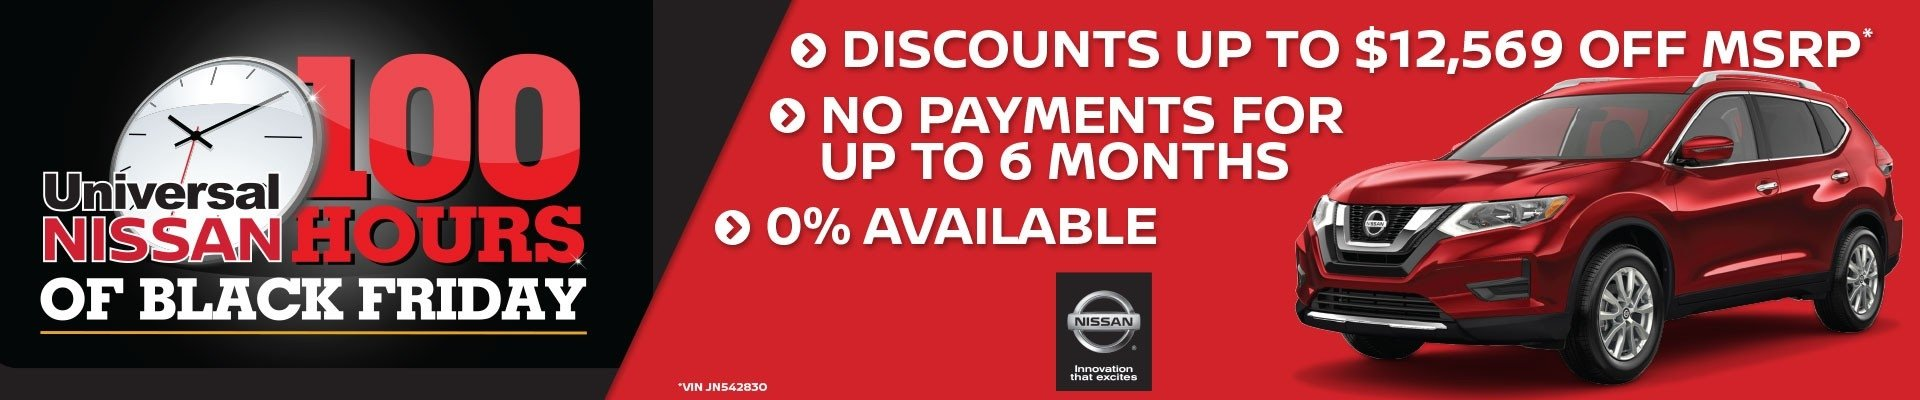 Universal Nissan 100 Hours of Black Friday